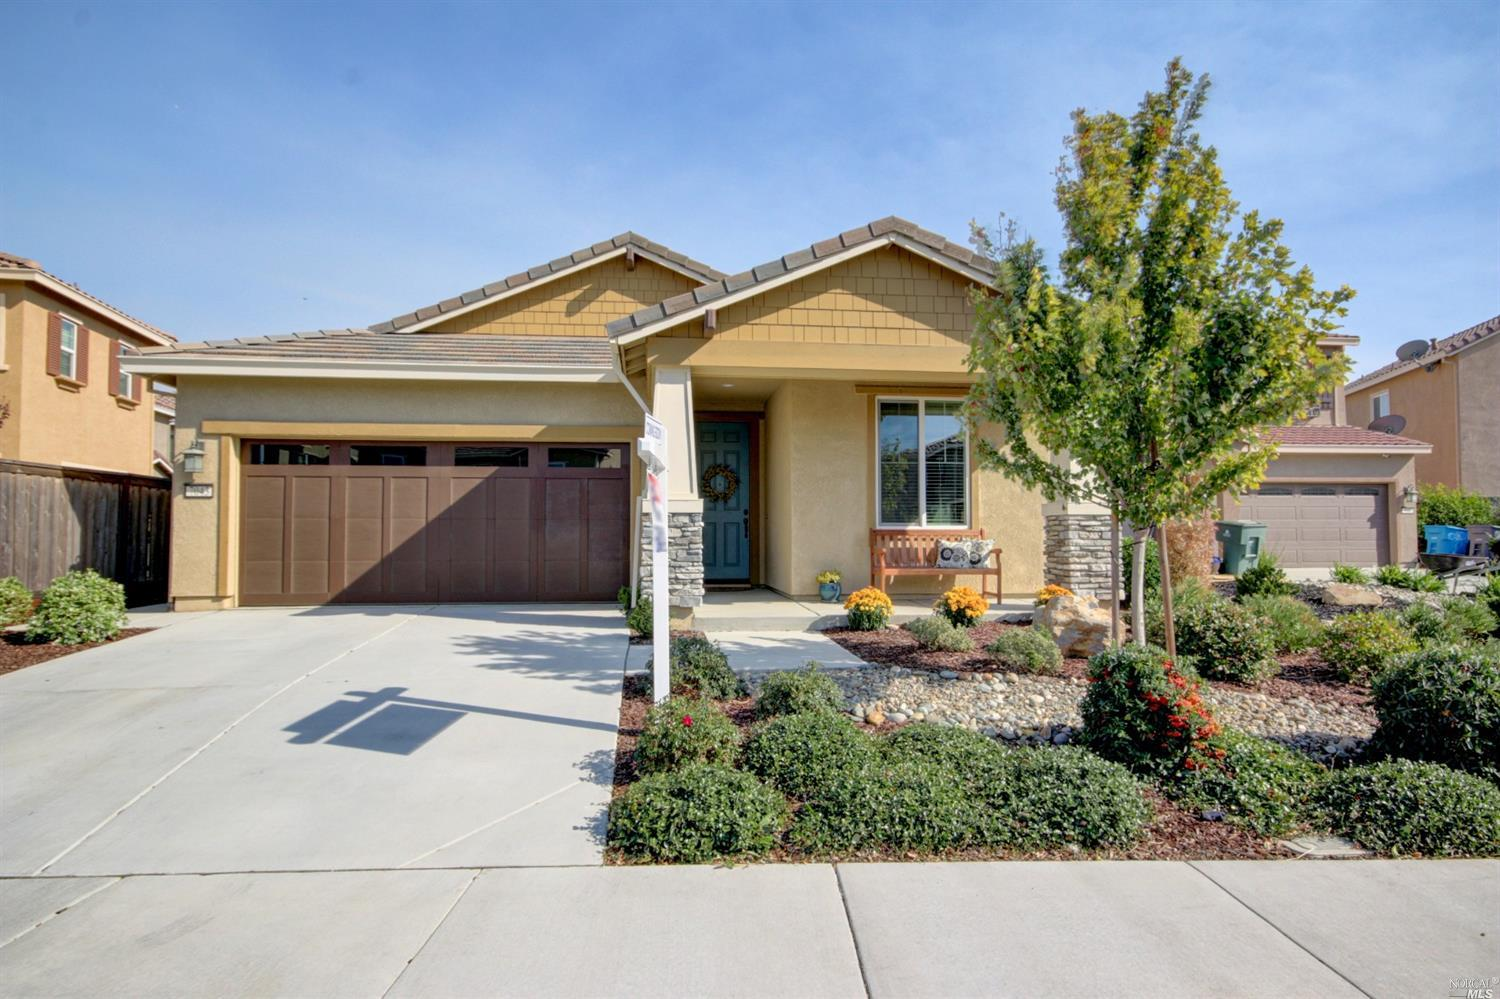 Photo of 7043 Sitka Court, Vacaville, CA 95687